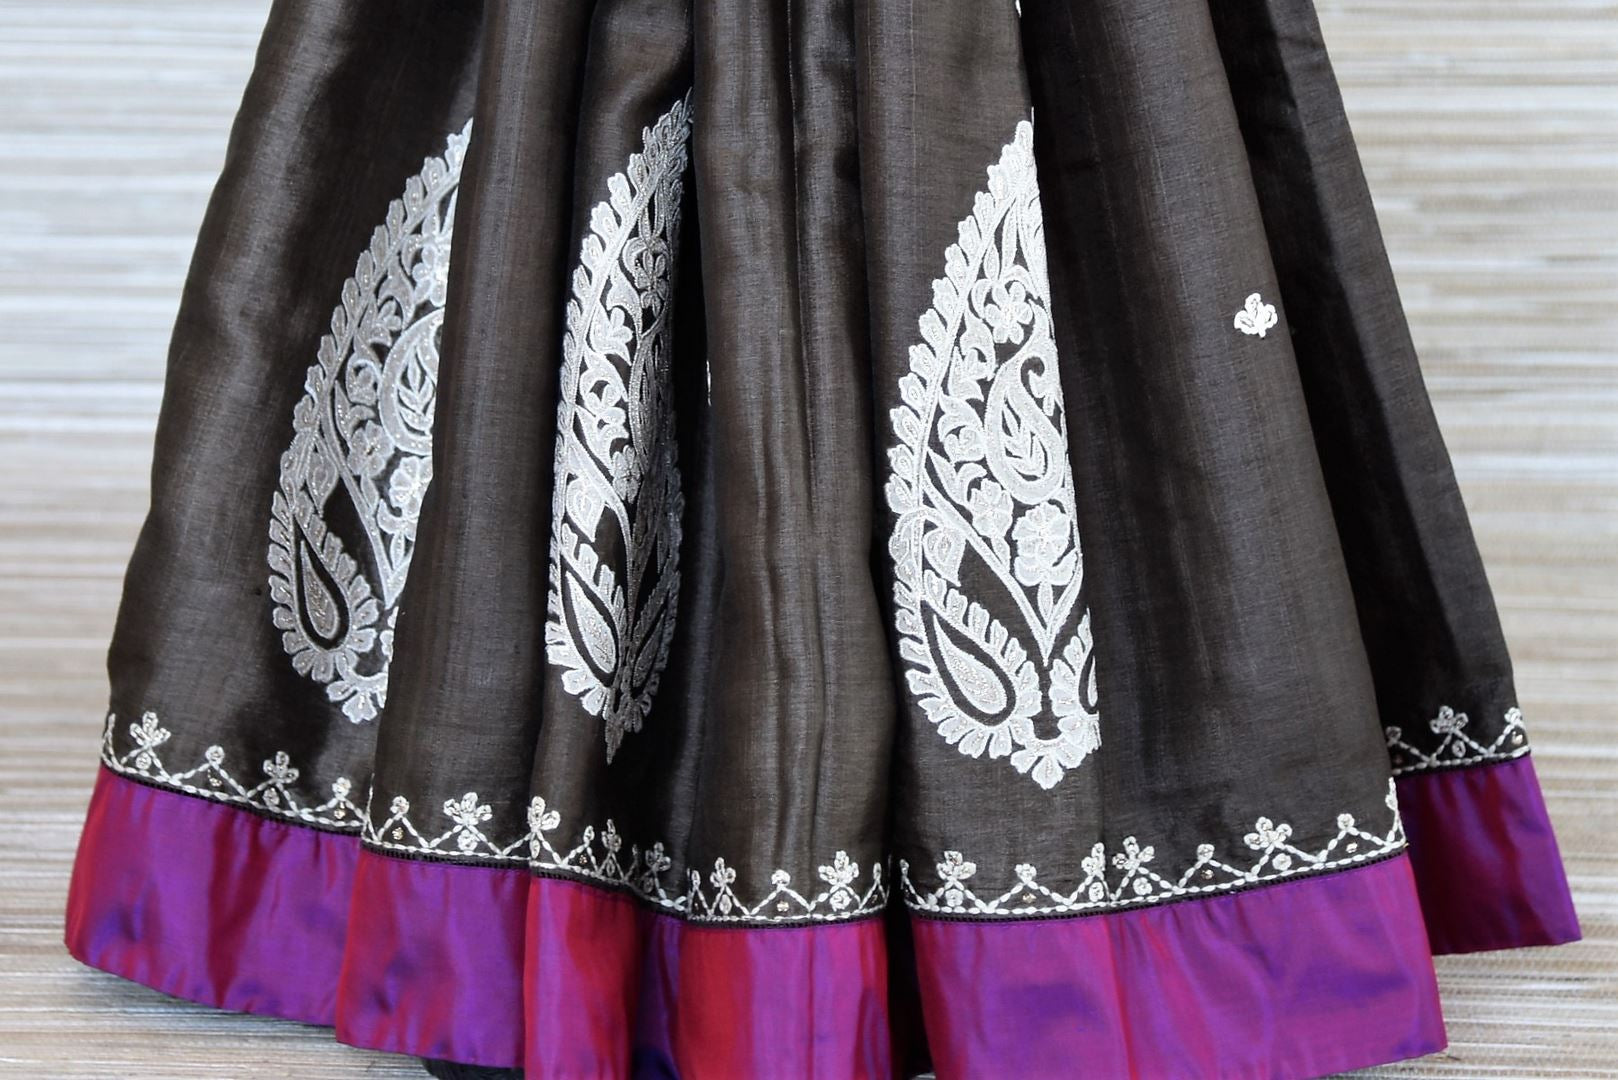 Buy dark grey applique work tussar saree online in USA with purple border. Be the talk of every occasions with your elegant saree look in designer sarees, embroidered sarees, handwoven silk sarees from Pure Elegance Indian fashion store in USA.-pleats